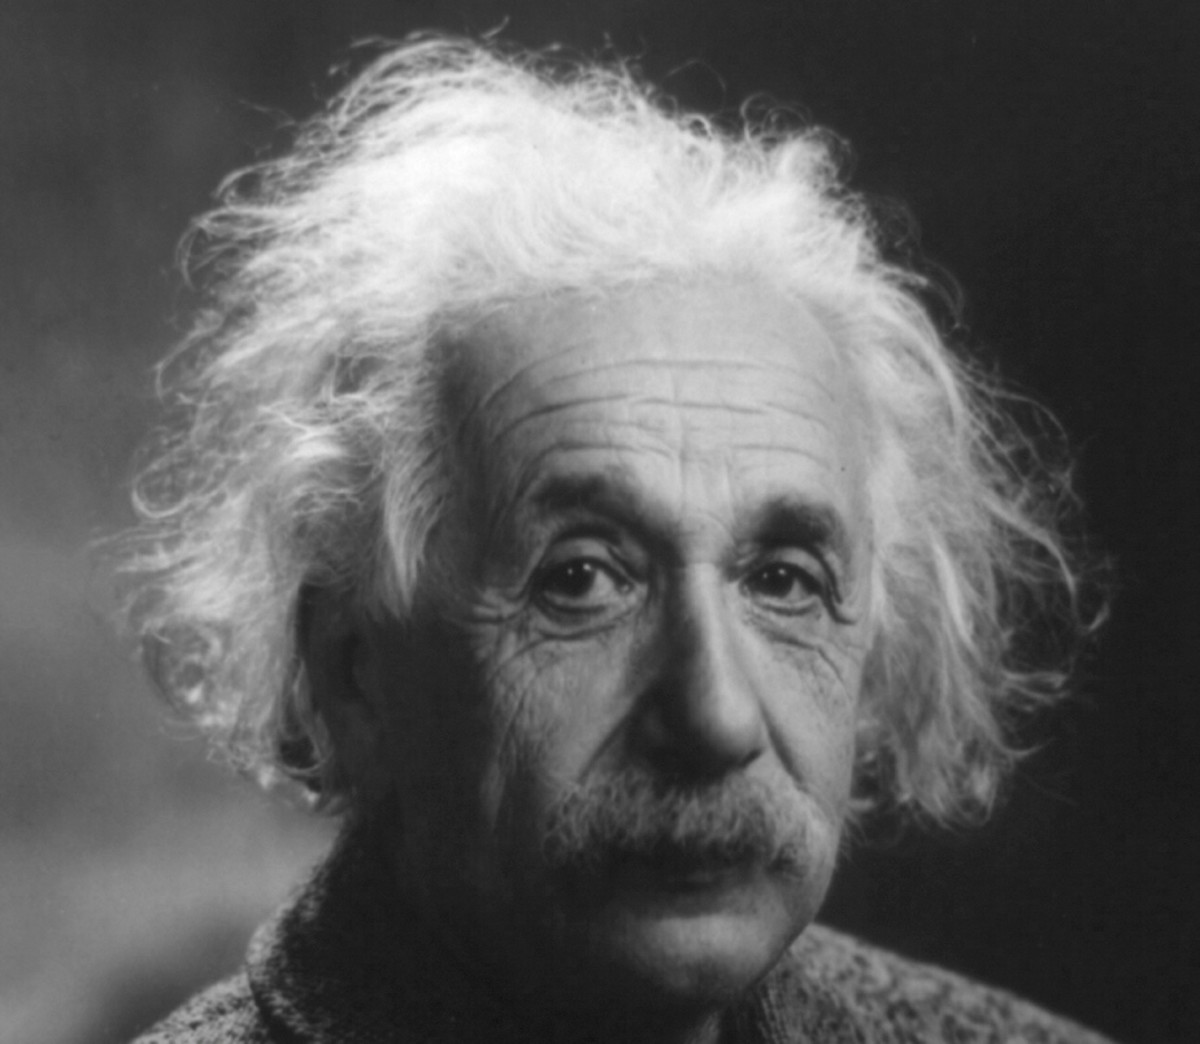 Albert Einstein born 14 March 1879 died 18 April 1955